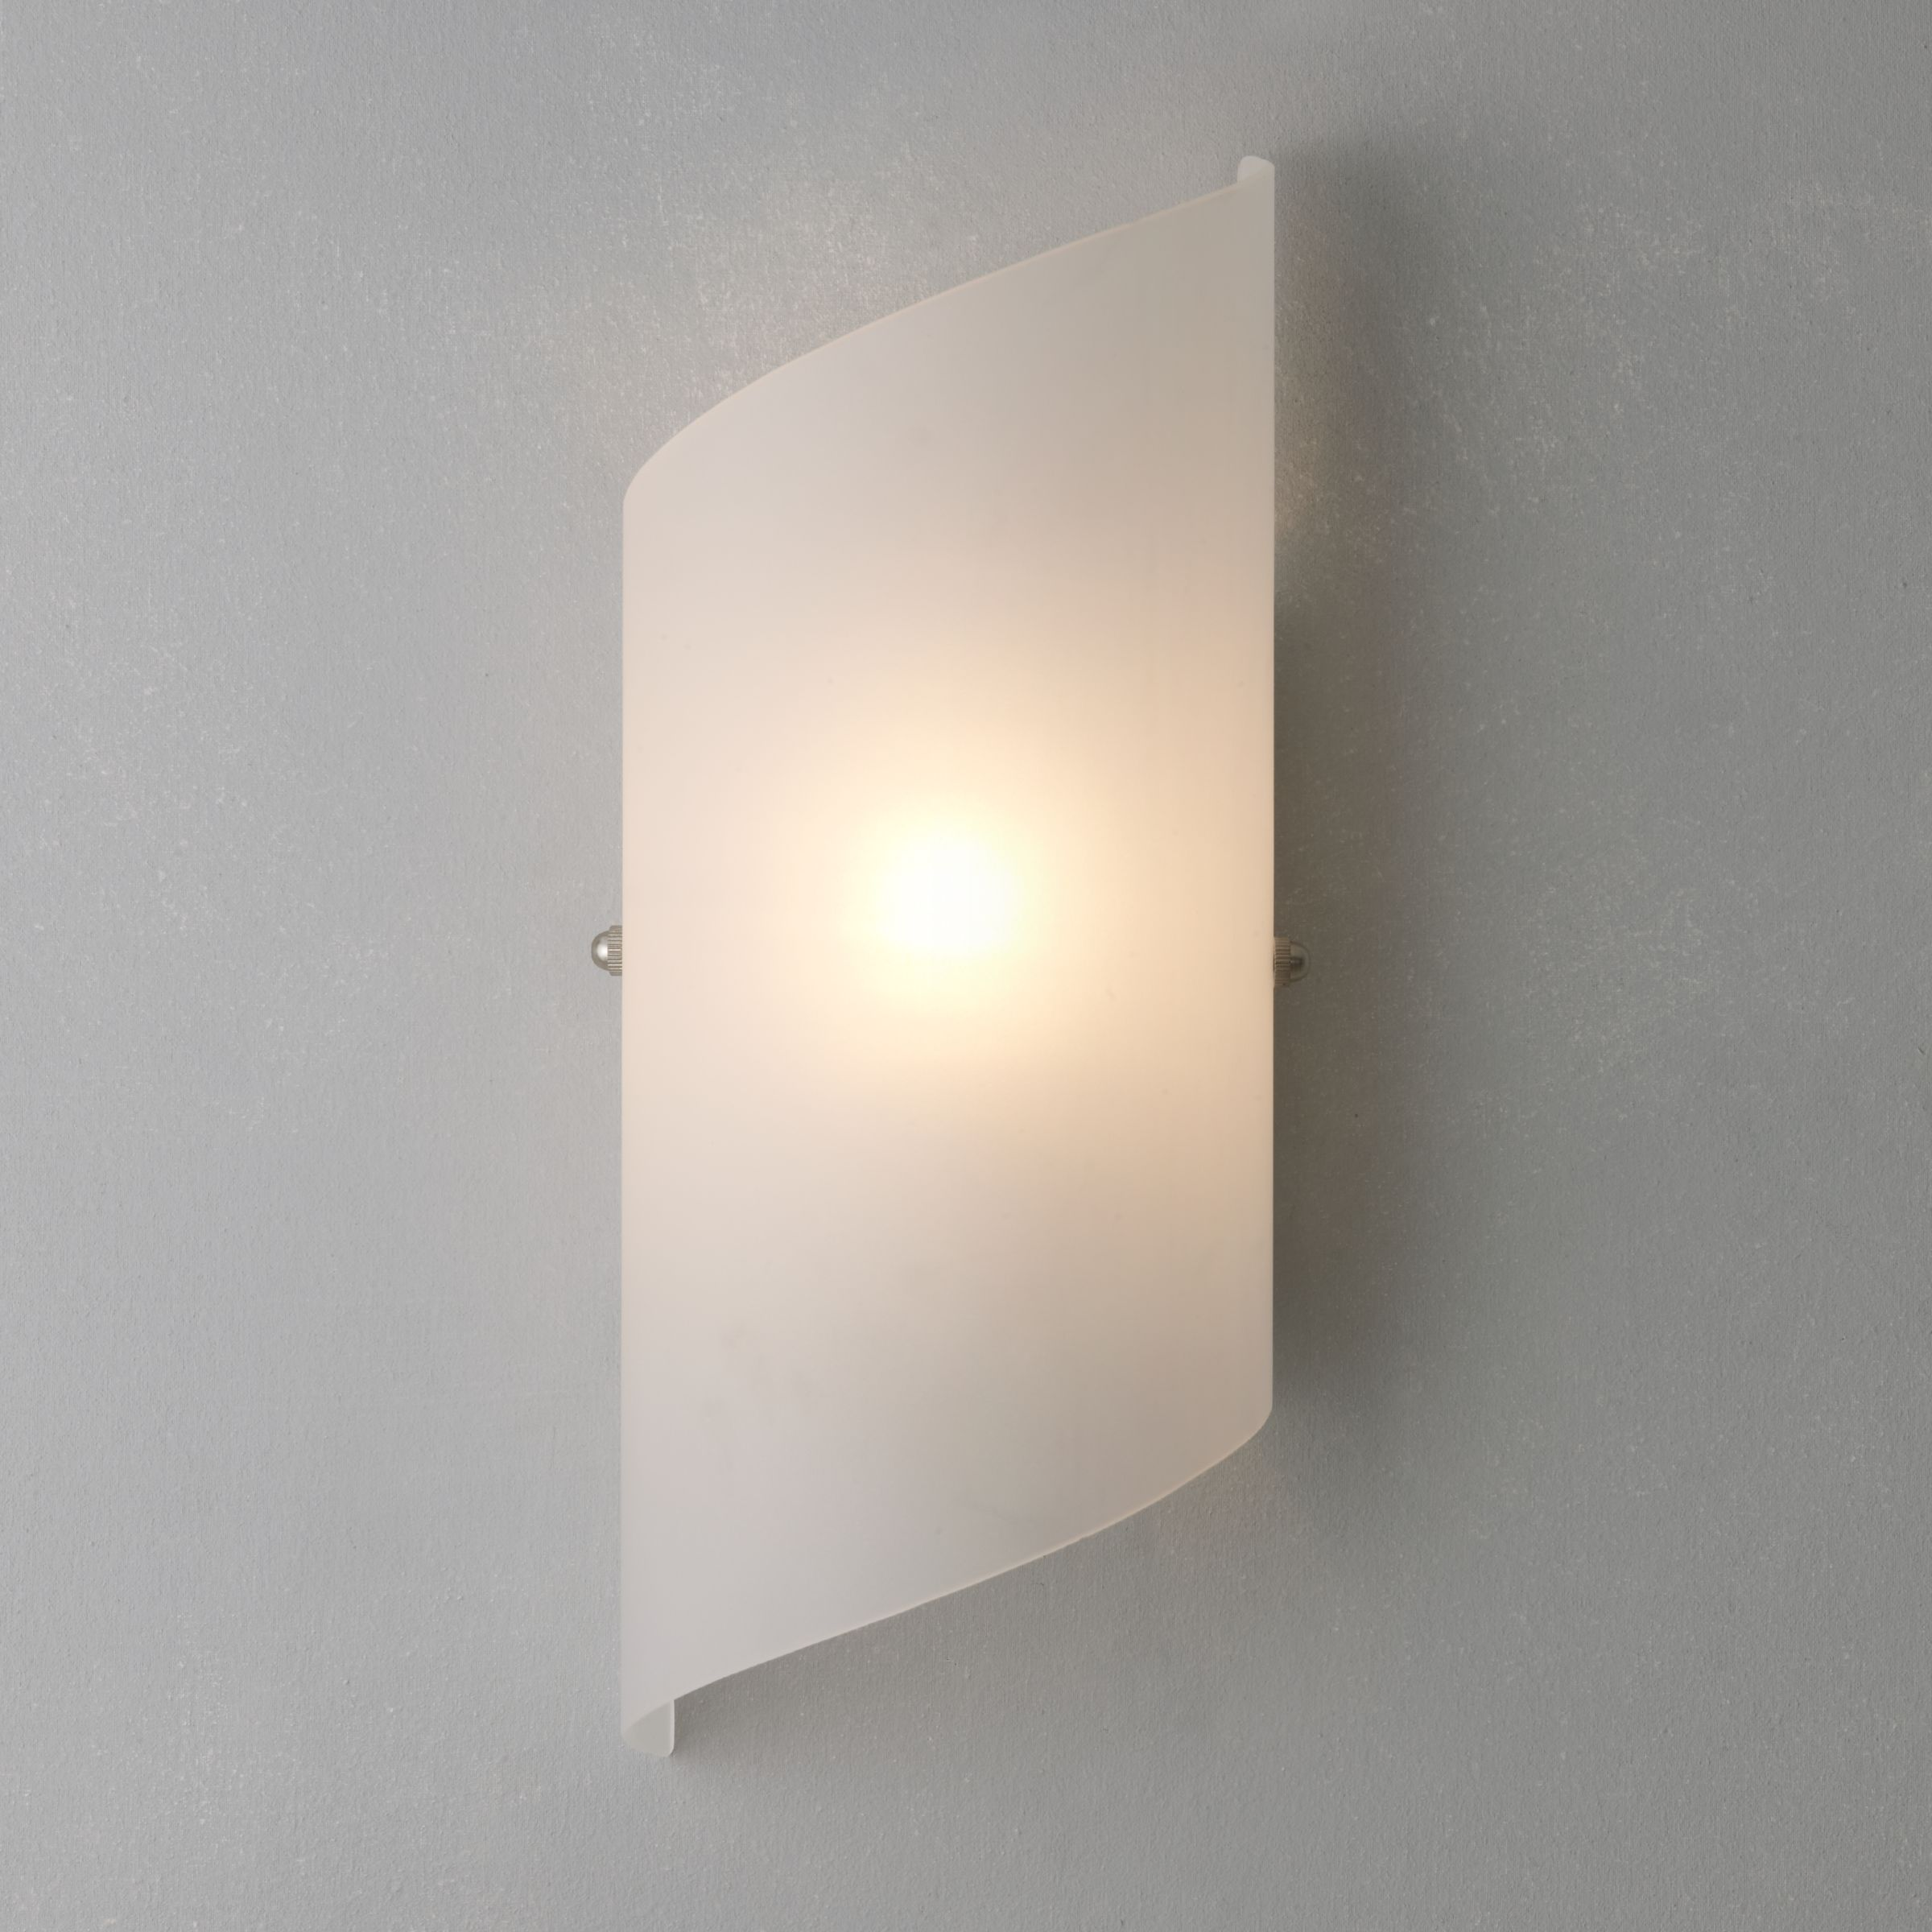 Buy John Lewis Scroll Wall Light John Lewis